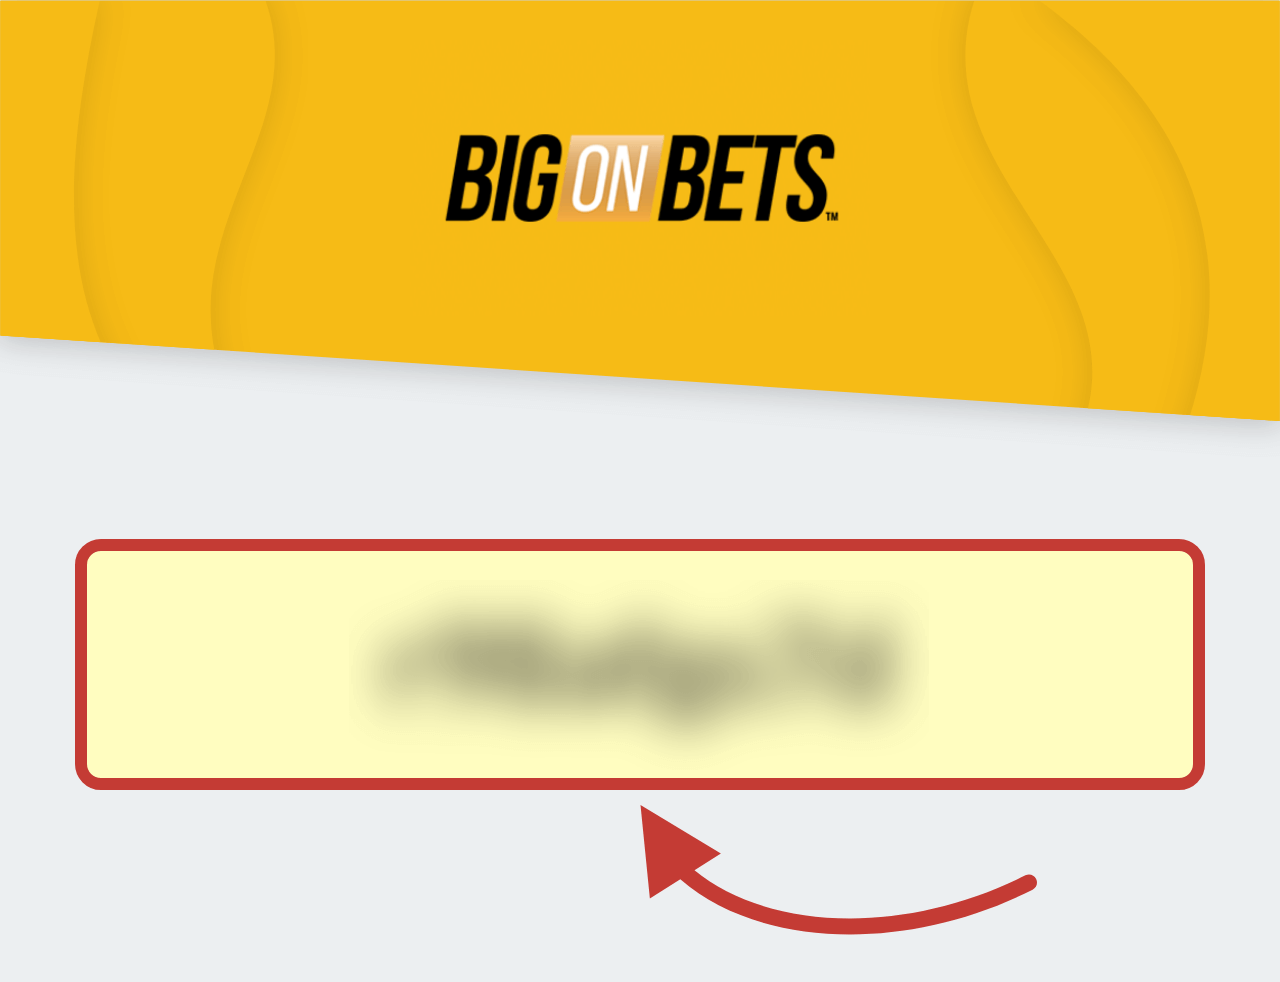 Big on Bets Casino Promo Code